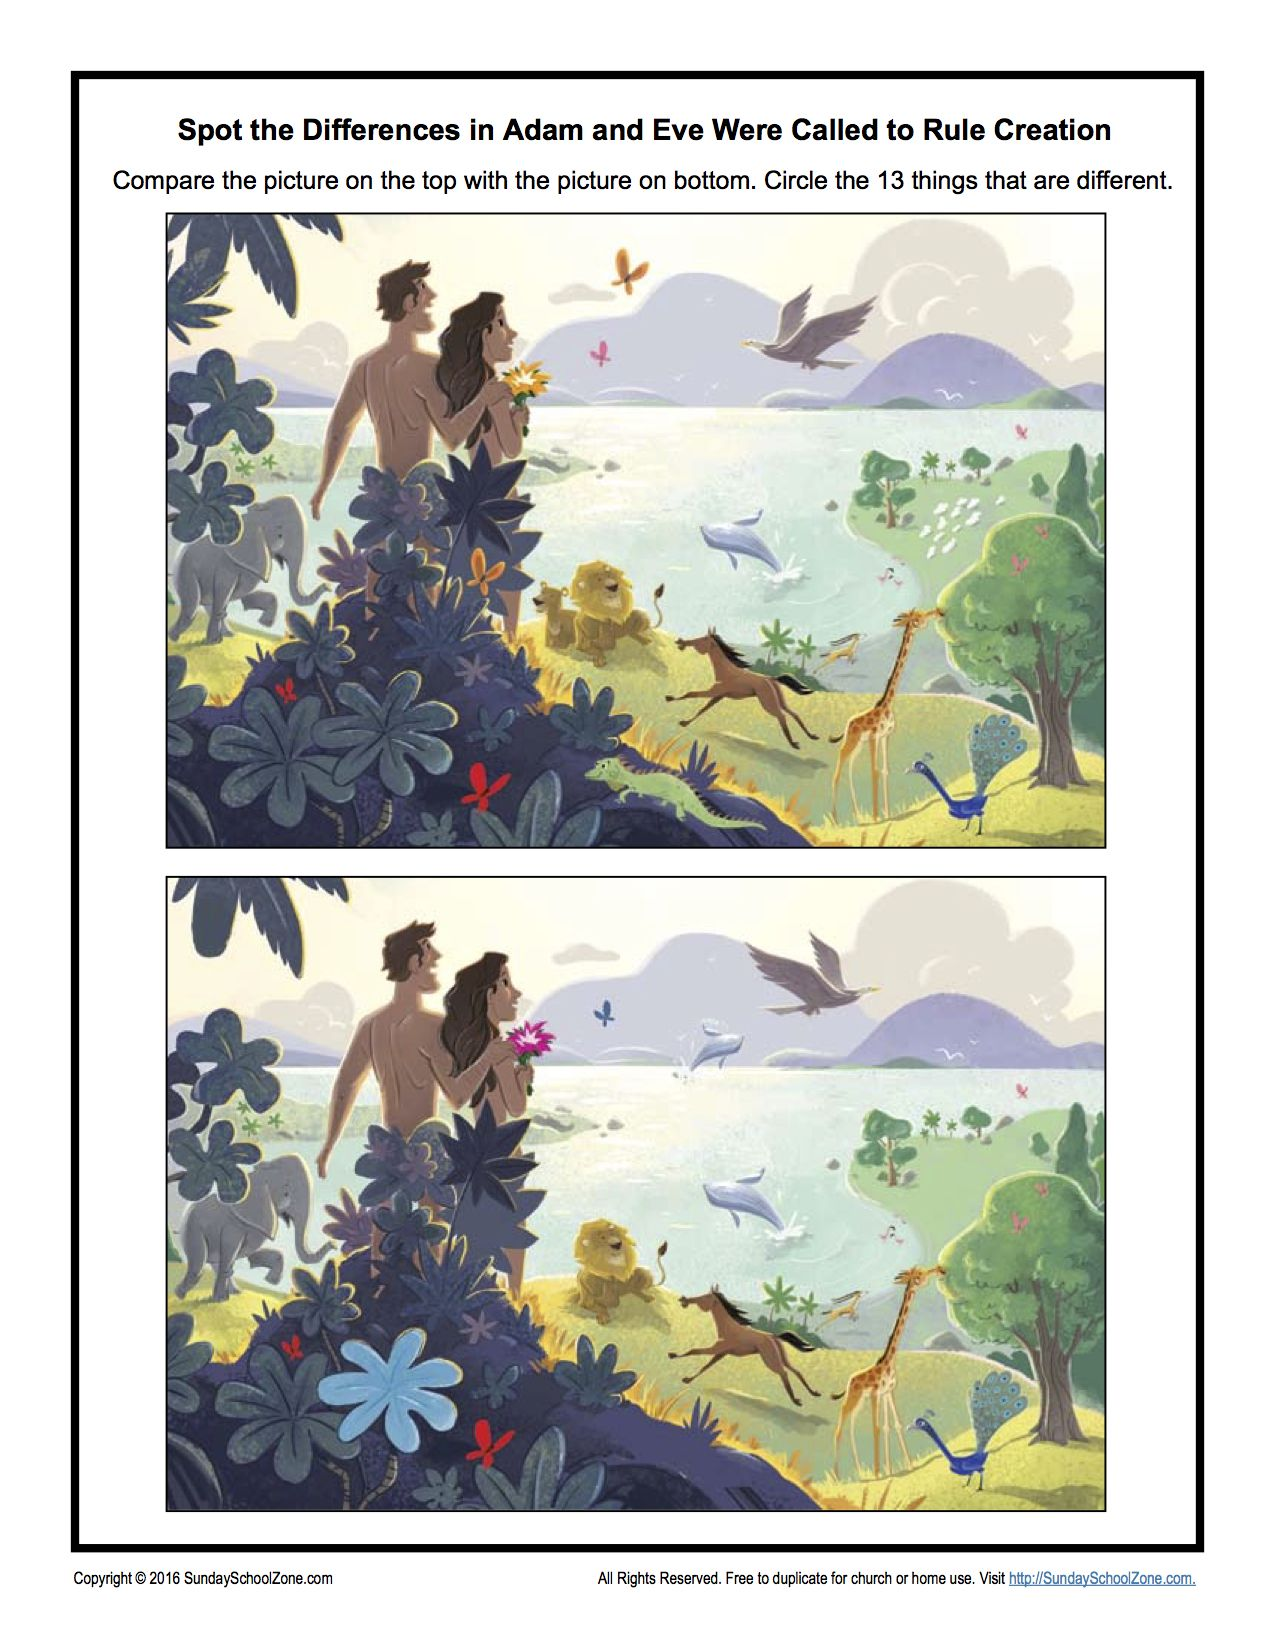 Adam And Eve Were Called To Rule Creation Spot The Differences